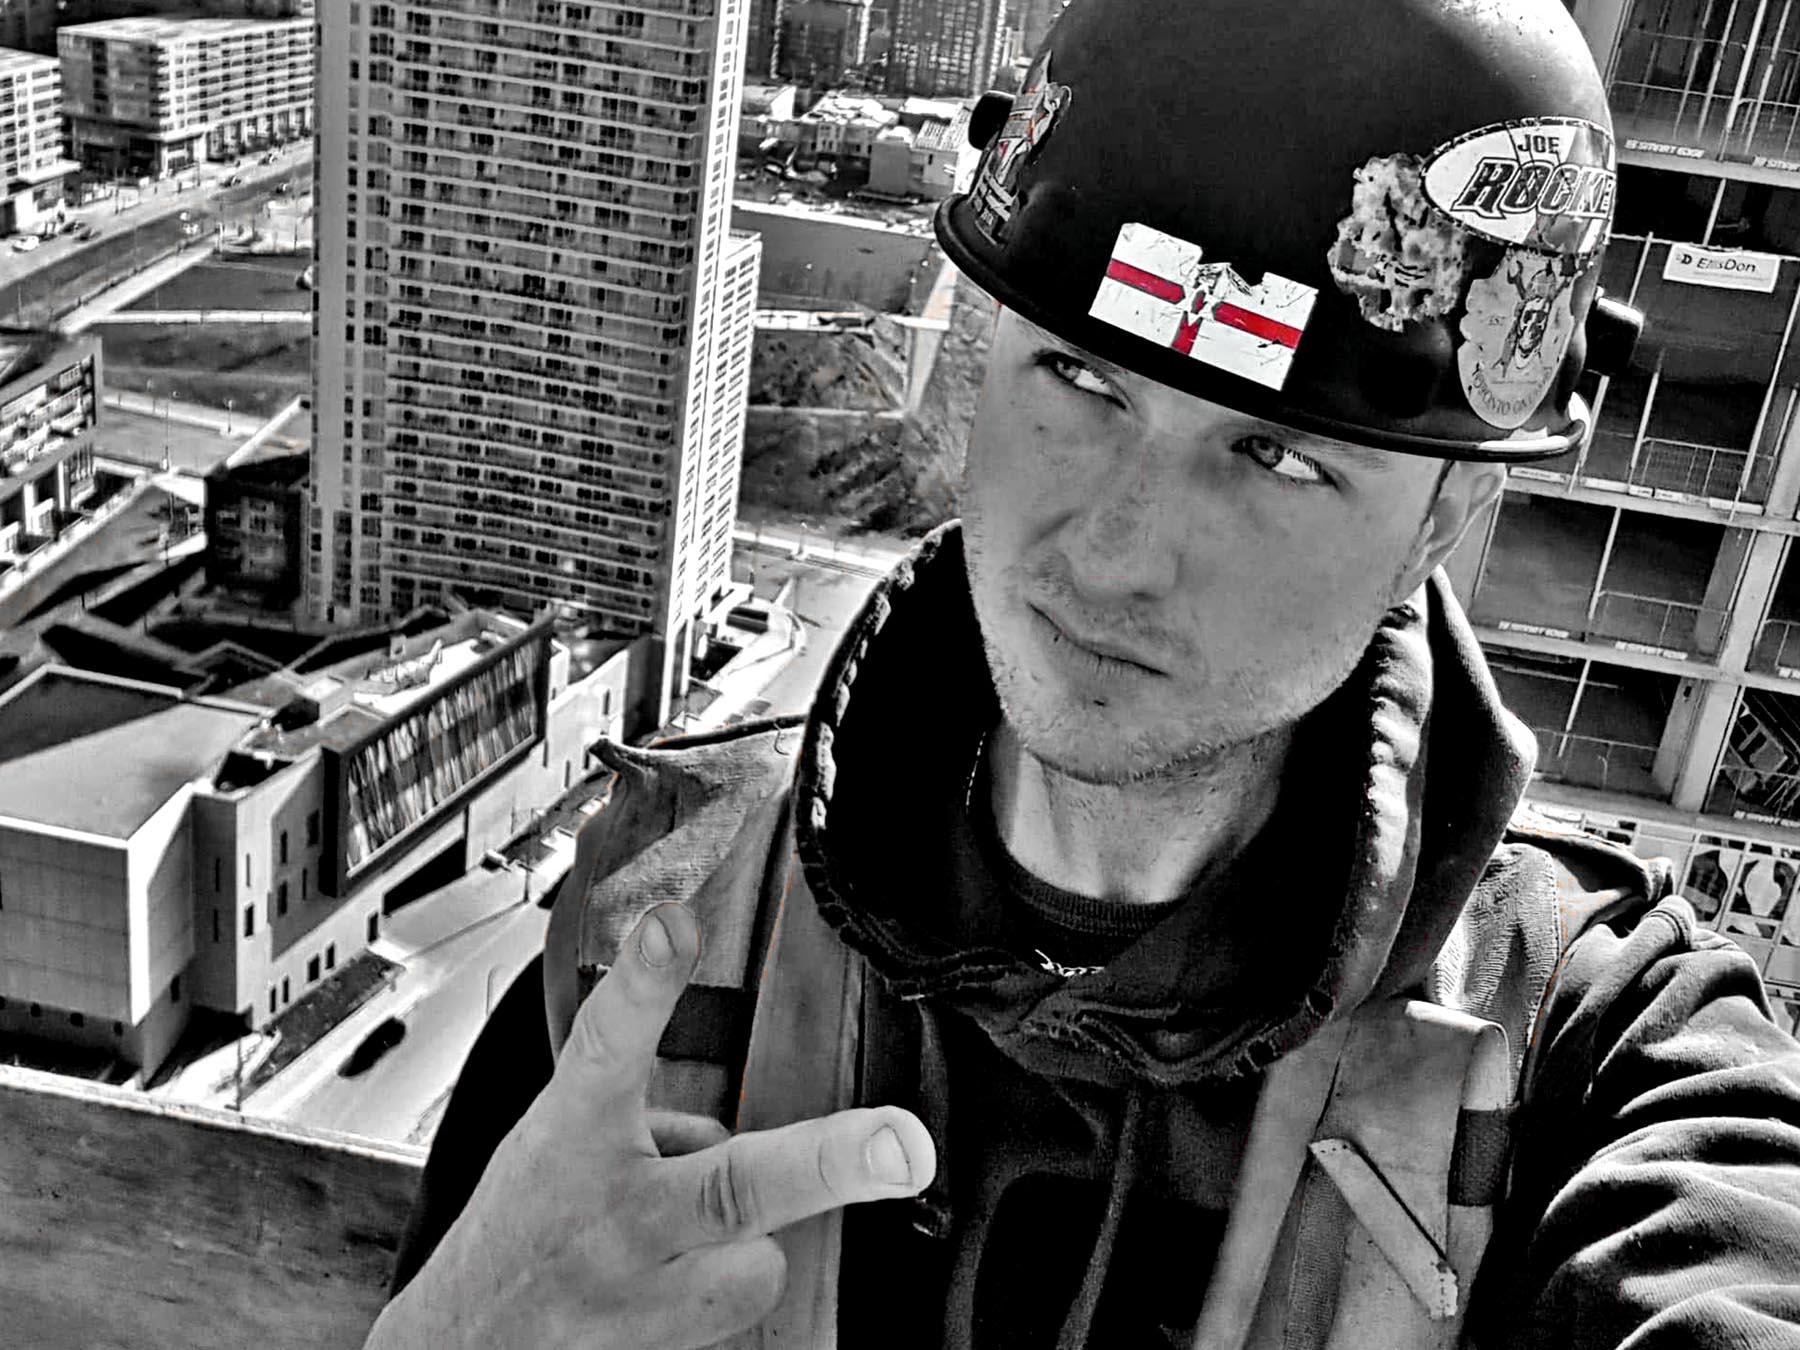 Andrew Belfast McLaughlin pictured in Toronto Canada photo 232732 horizontal crop - Bout Yeh photographers Belfast